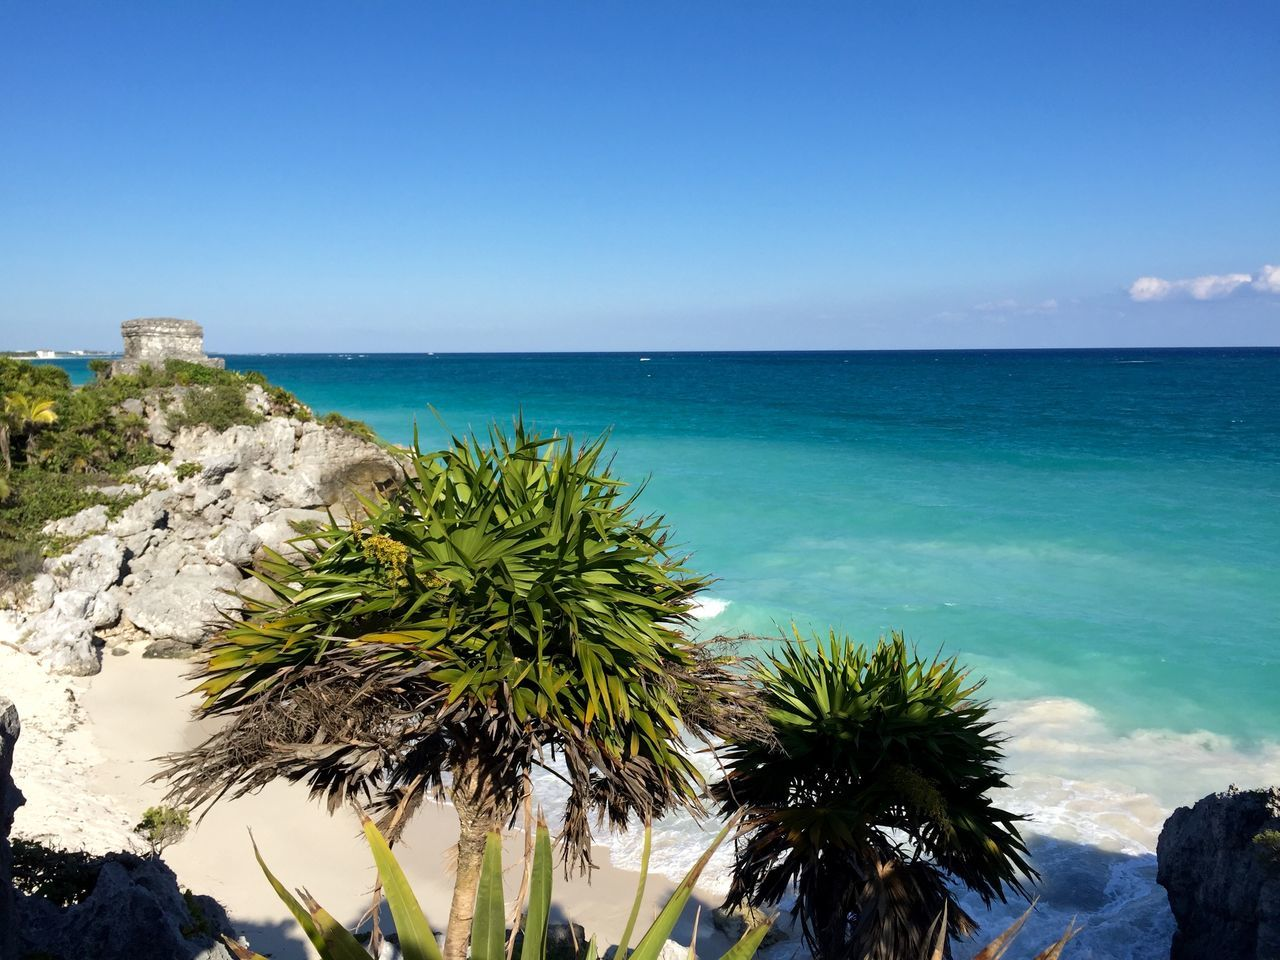 Beach Beauty In Nature Blue Clear Sky Coast Day Horizon Over Water Mexico Nature No People Outdoors Palm Tree Scenics Sea Sky Tranquility Tulum , Rivera Maya. Water